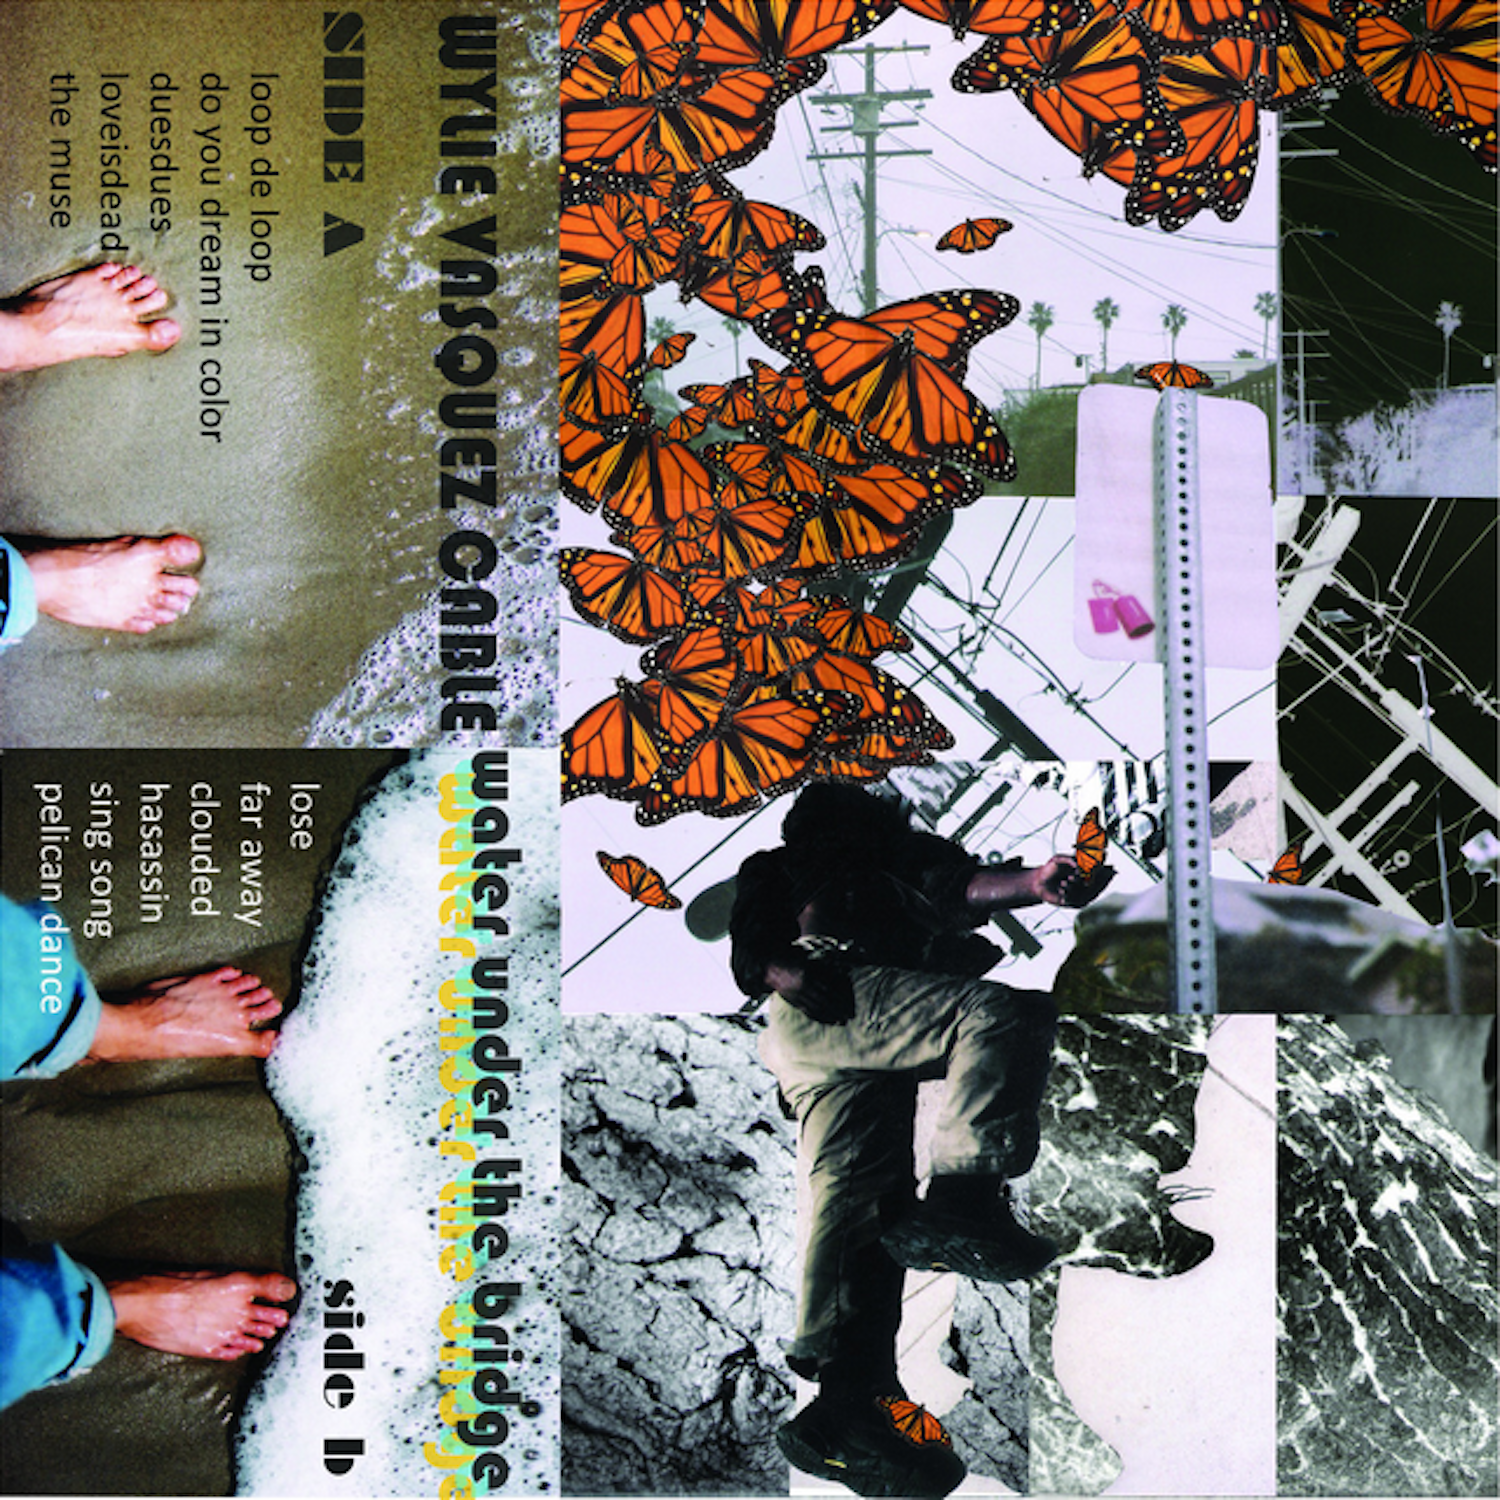 Cover Artwork Photography and Collage by Wylie Cable